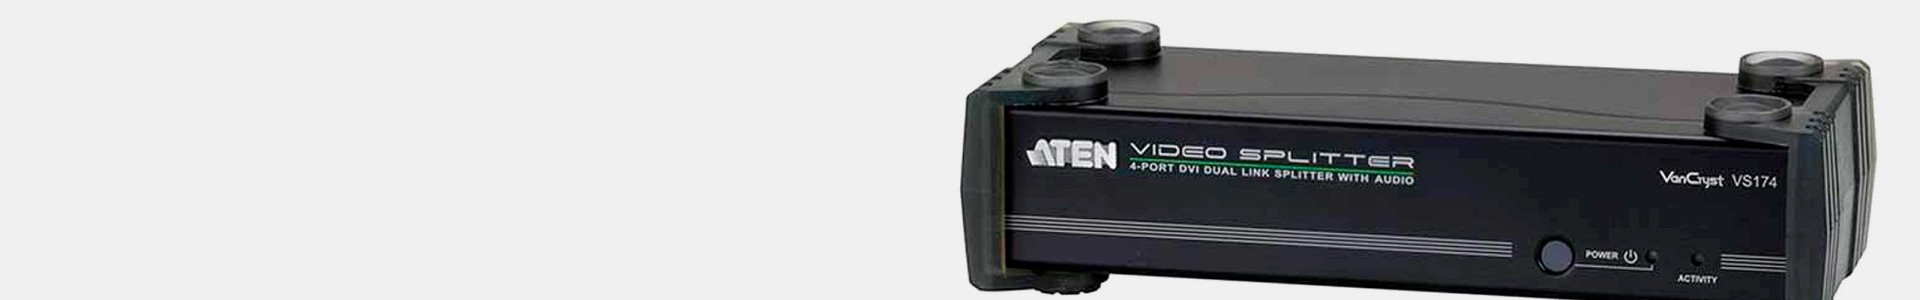 ATEN video spliiters at Avacab - Discounts for professionals